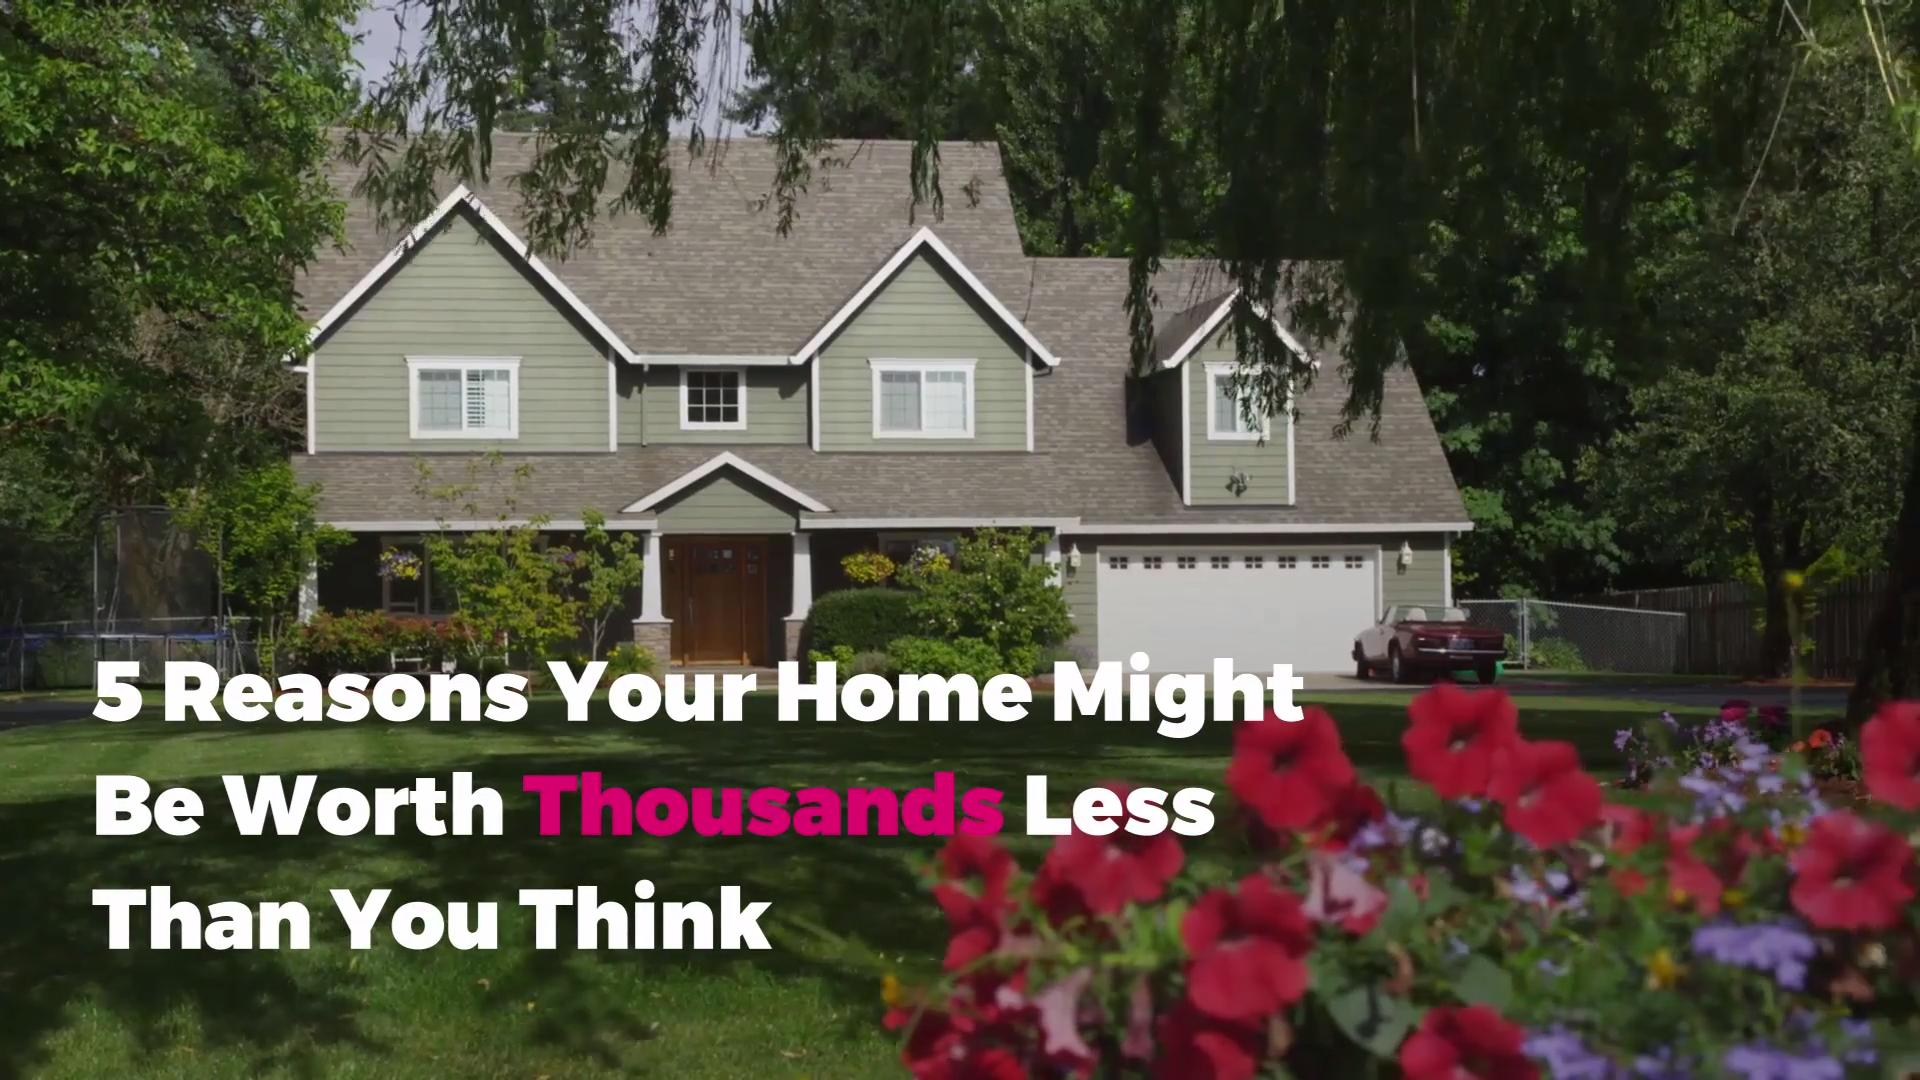 5 Reasons Your Home Might Be Worth Thousands Less Than You Think